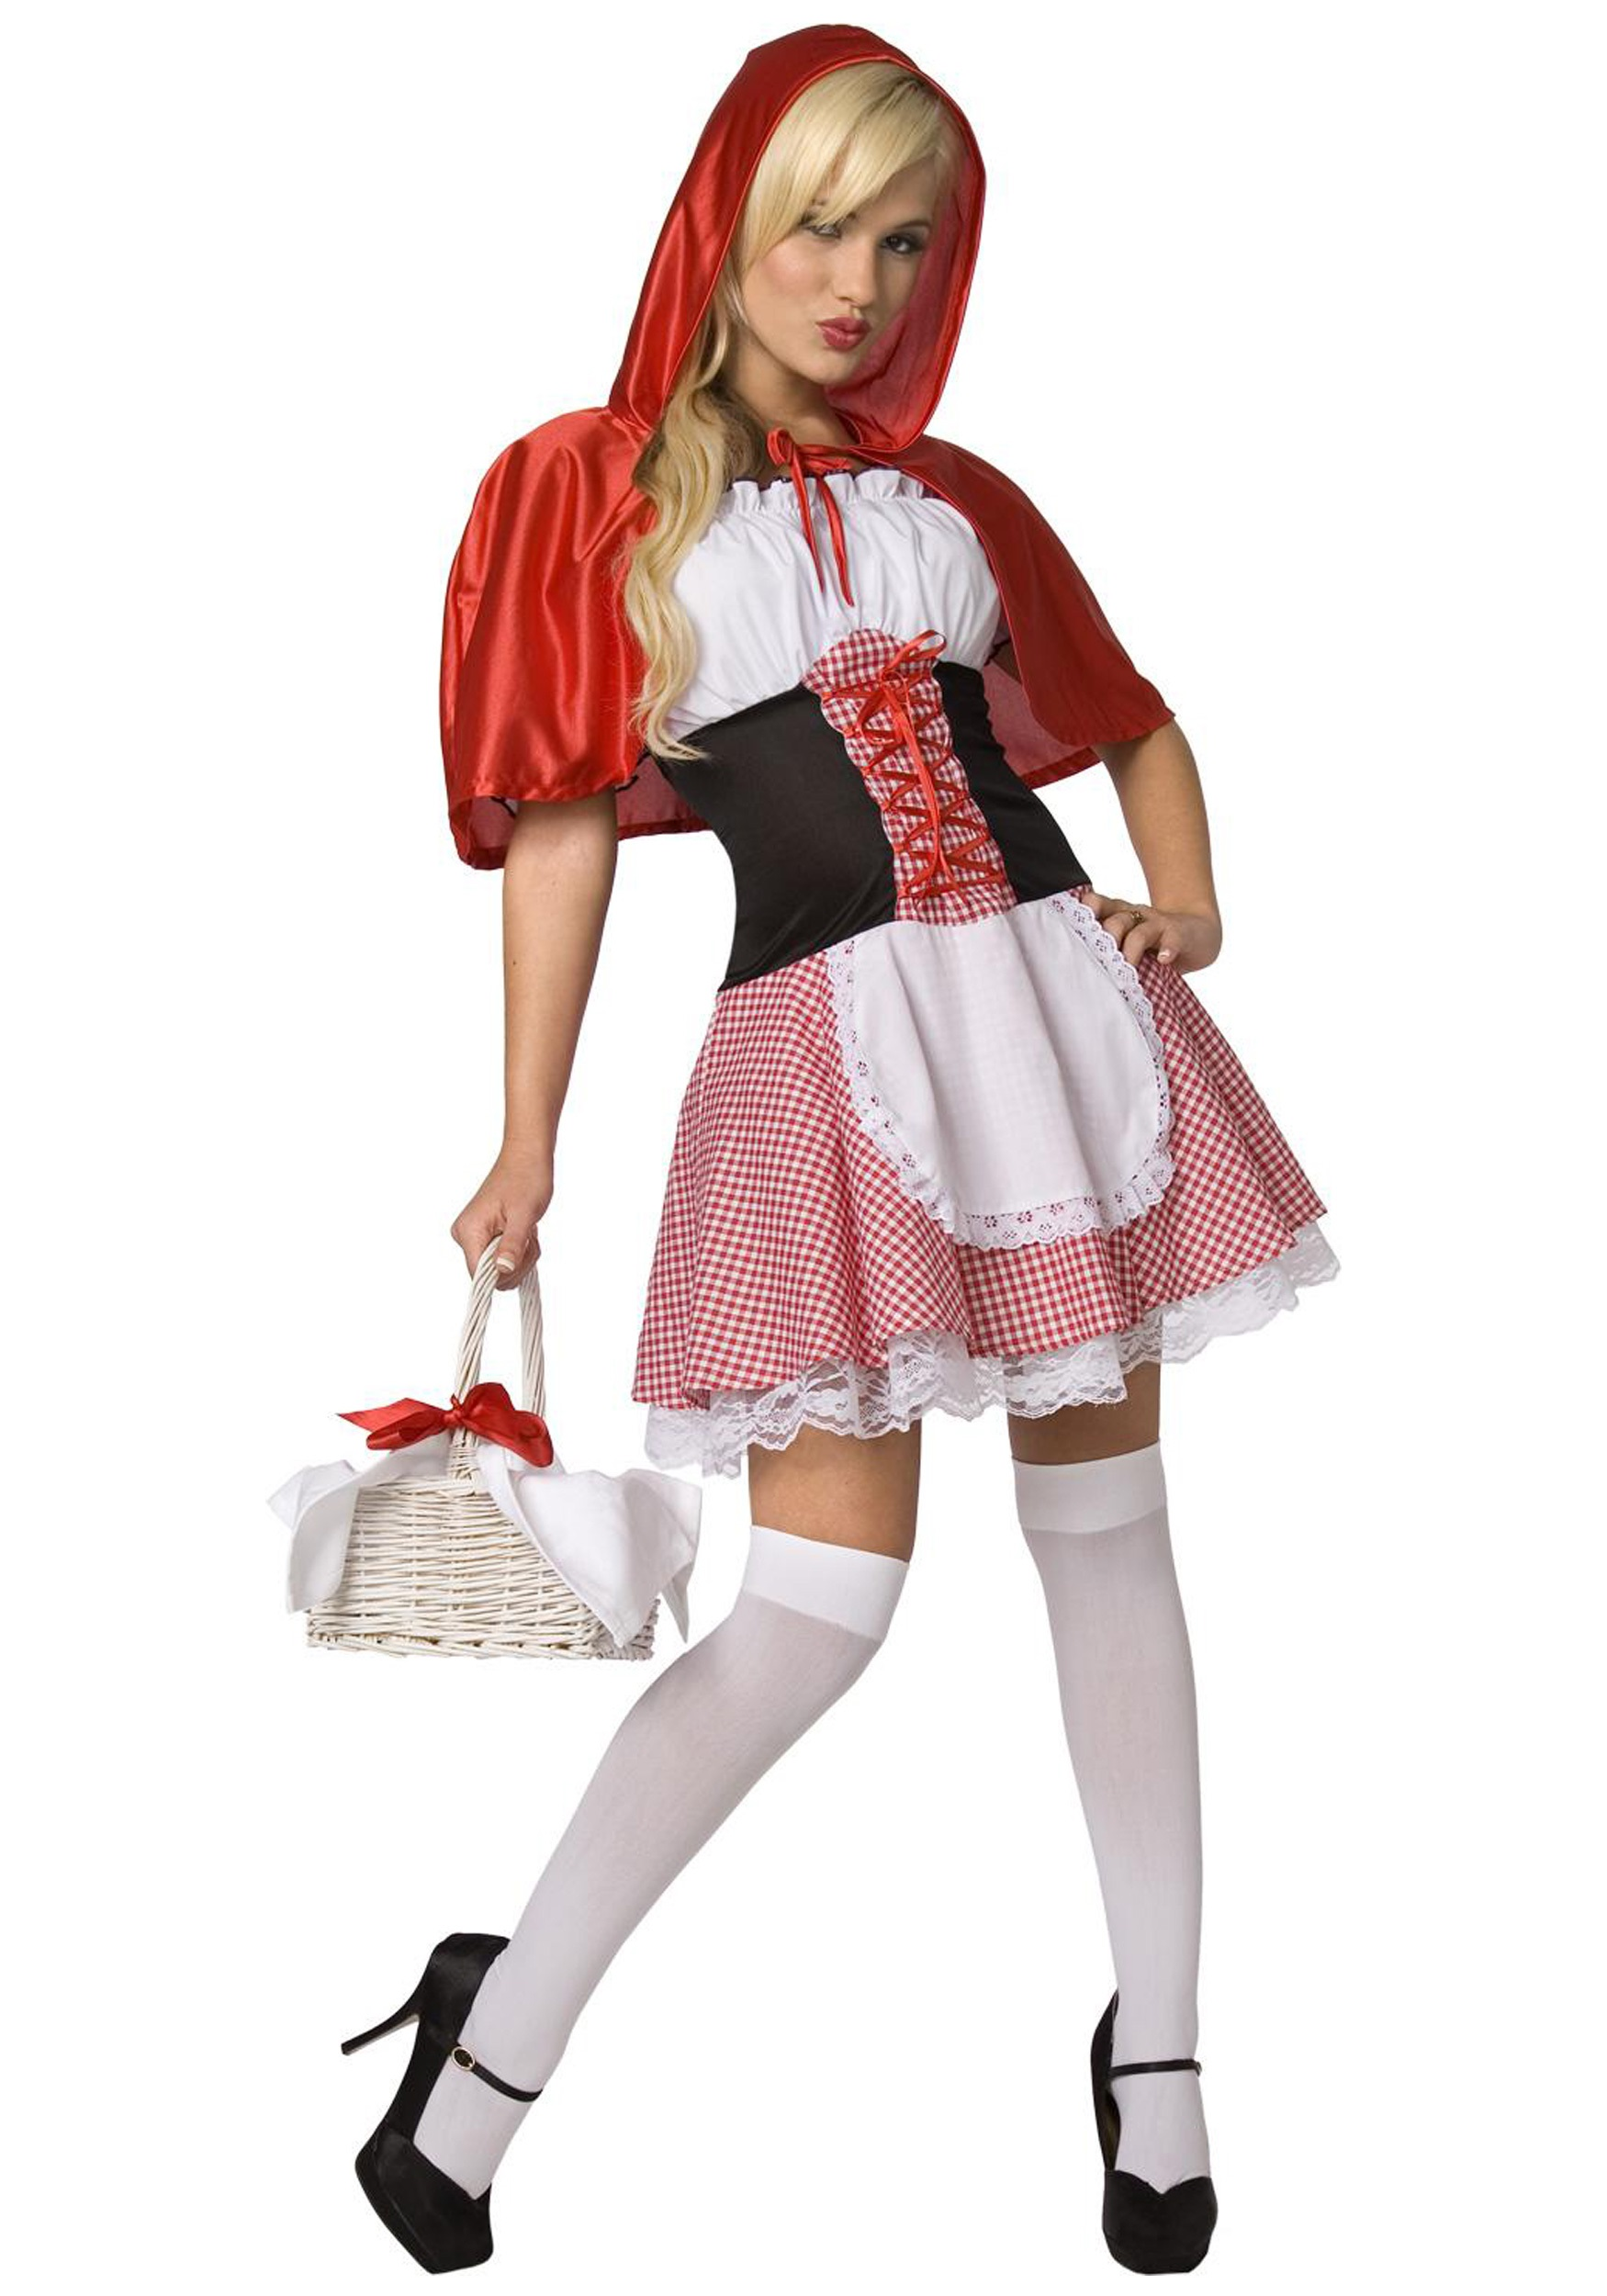 Sexy Red Riding Hood Costume for Women 8bff7be9cc